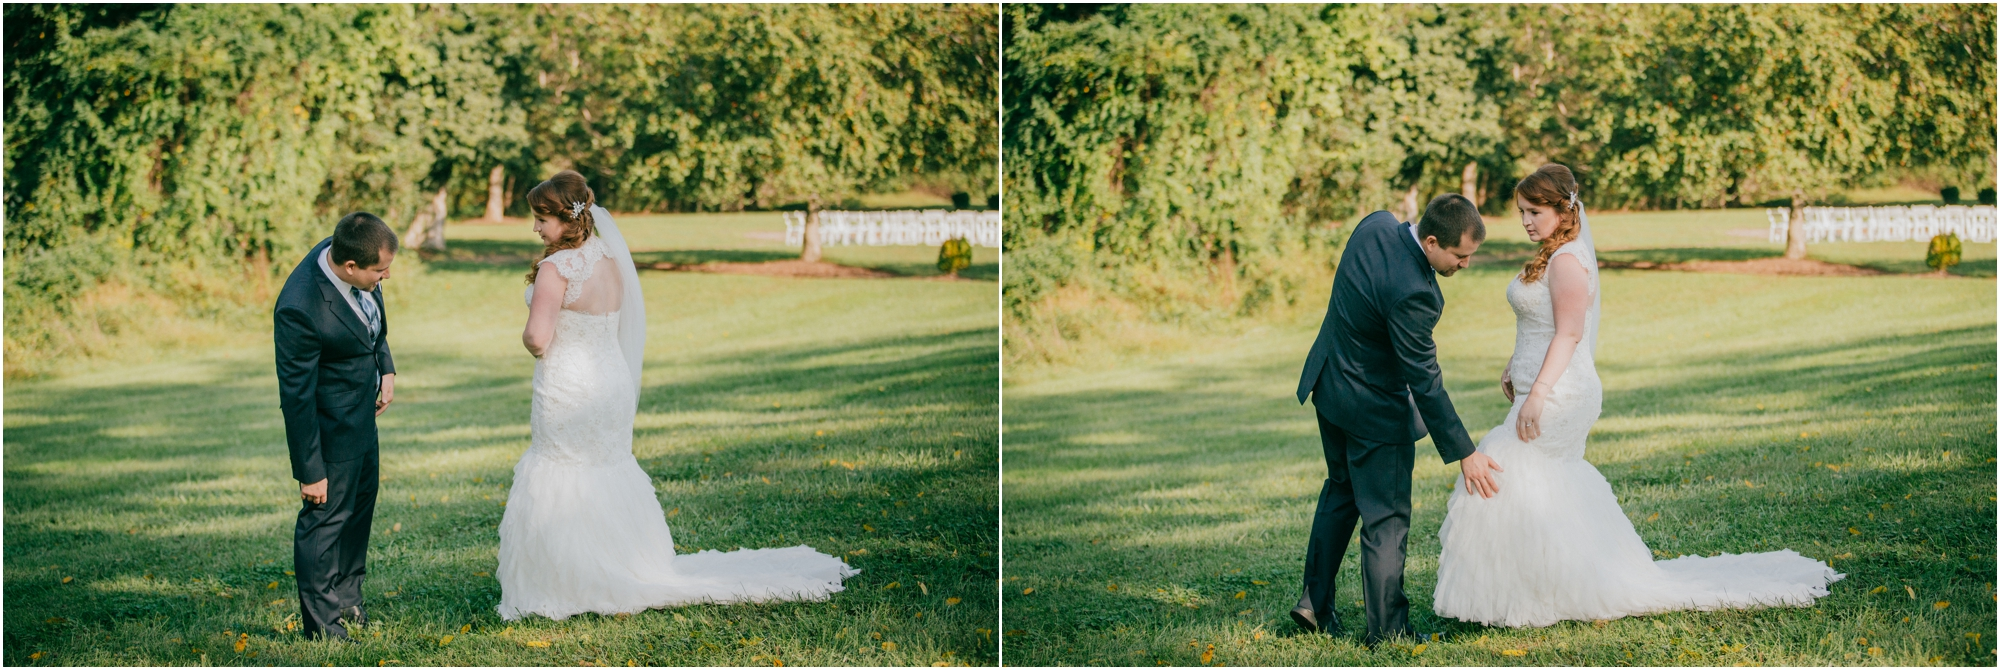 Fall-gem-stone-earthy-succulent-mount-airy-mansion-wedding-tennessee-elopement-photographer_0039.jpg